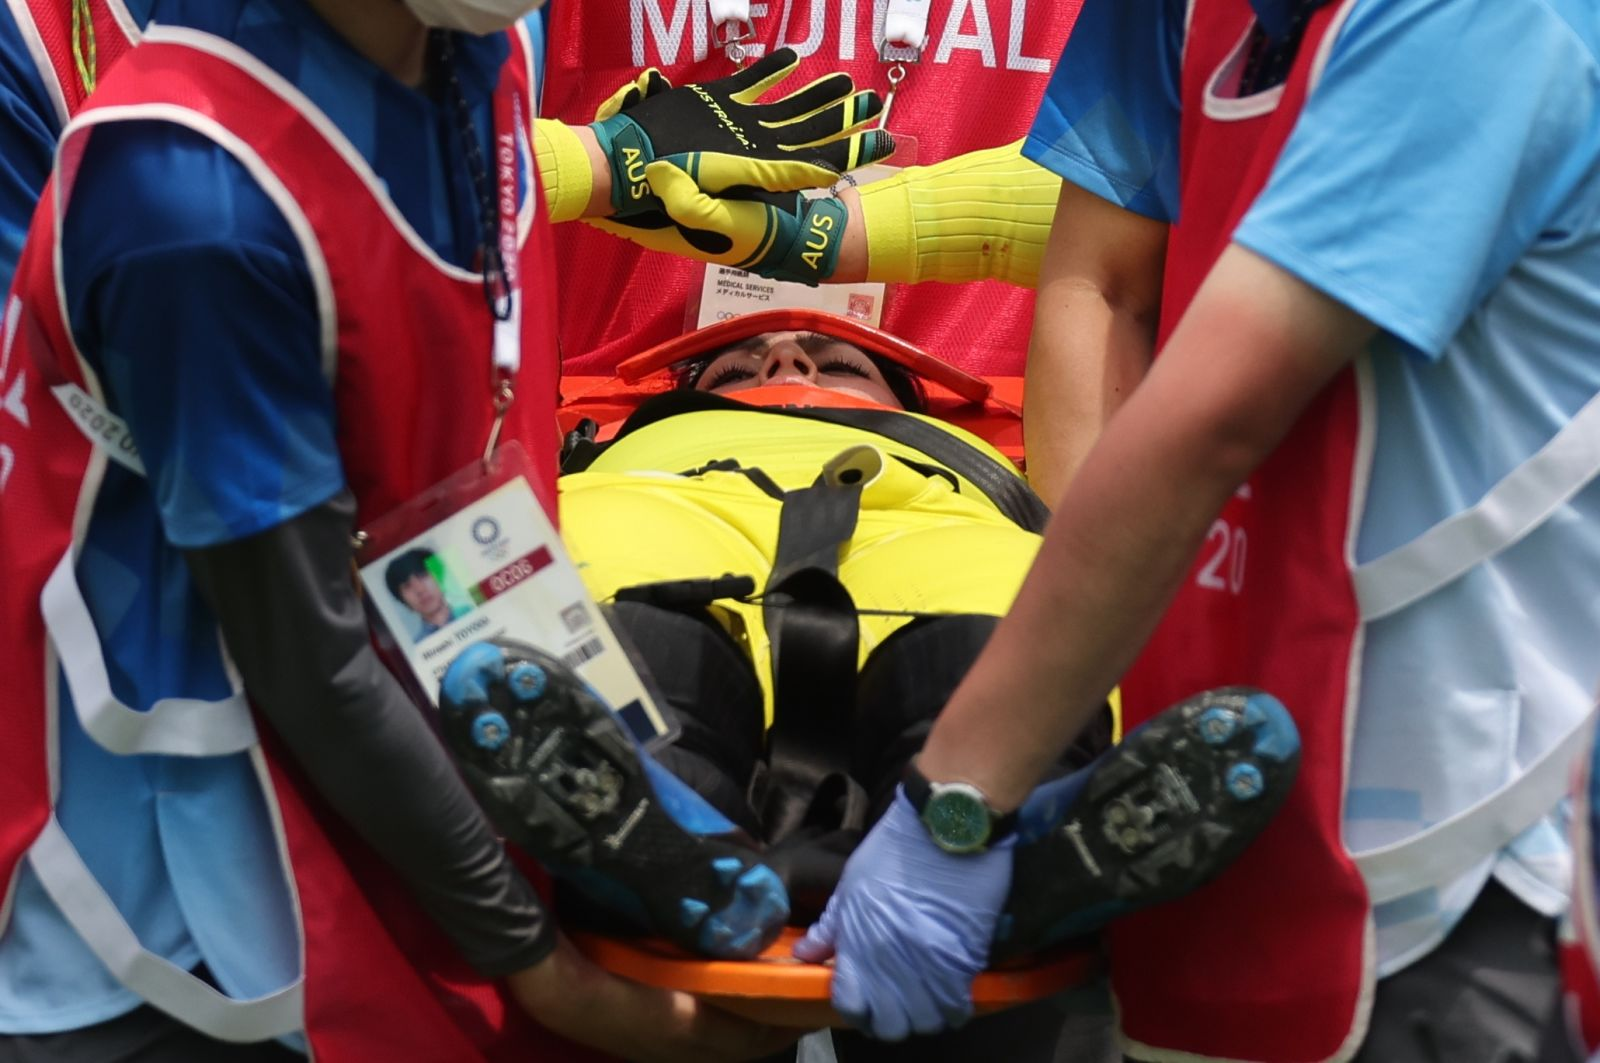 Australia's Saya Sakakibara receives medical attention aftera crash in the BMX racing semifinalon July 30. She was leading the race when she went down.